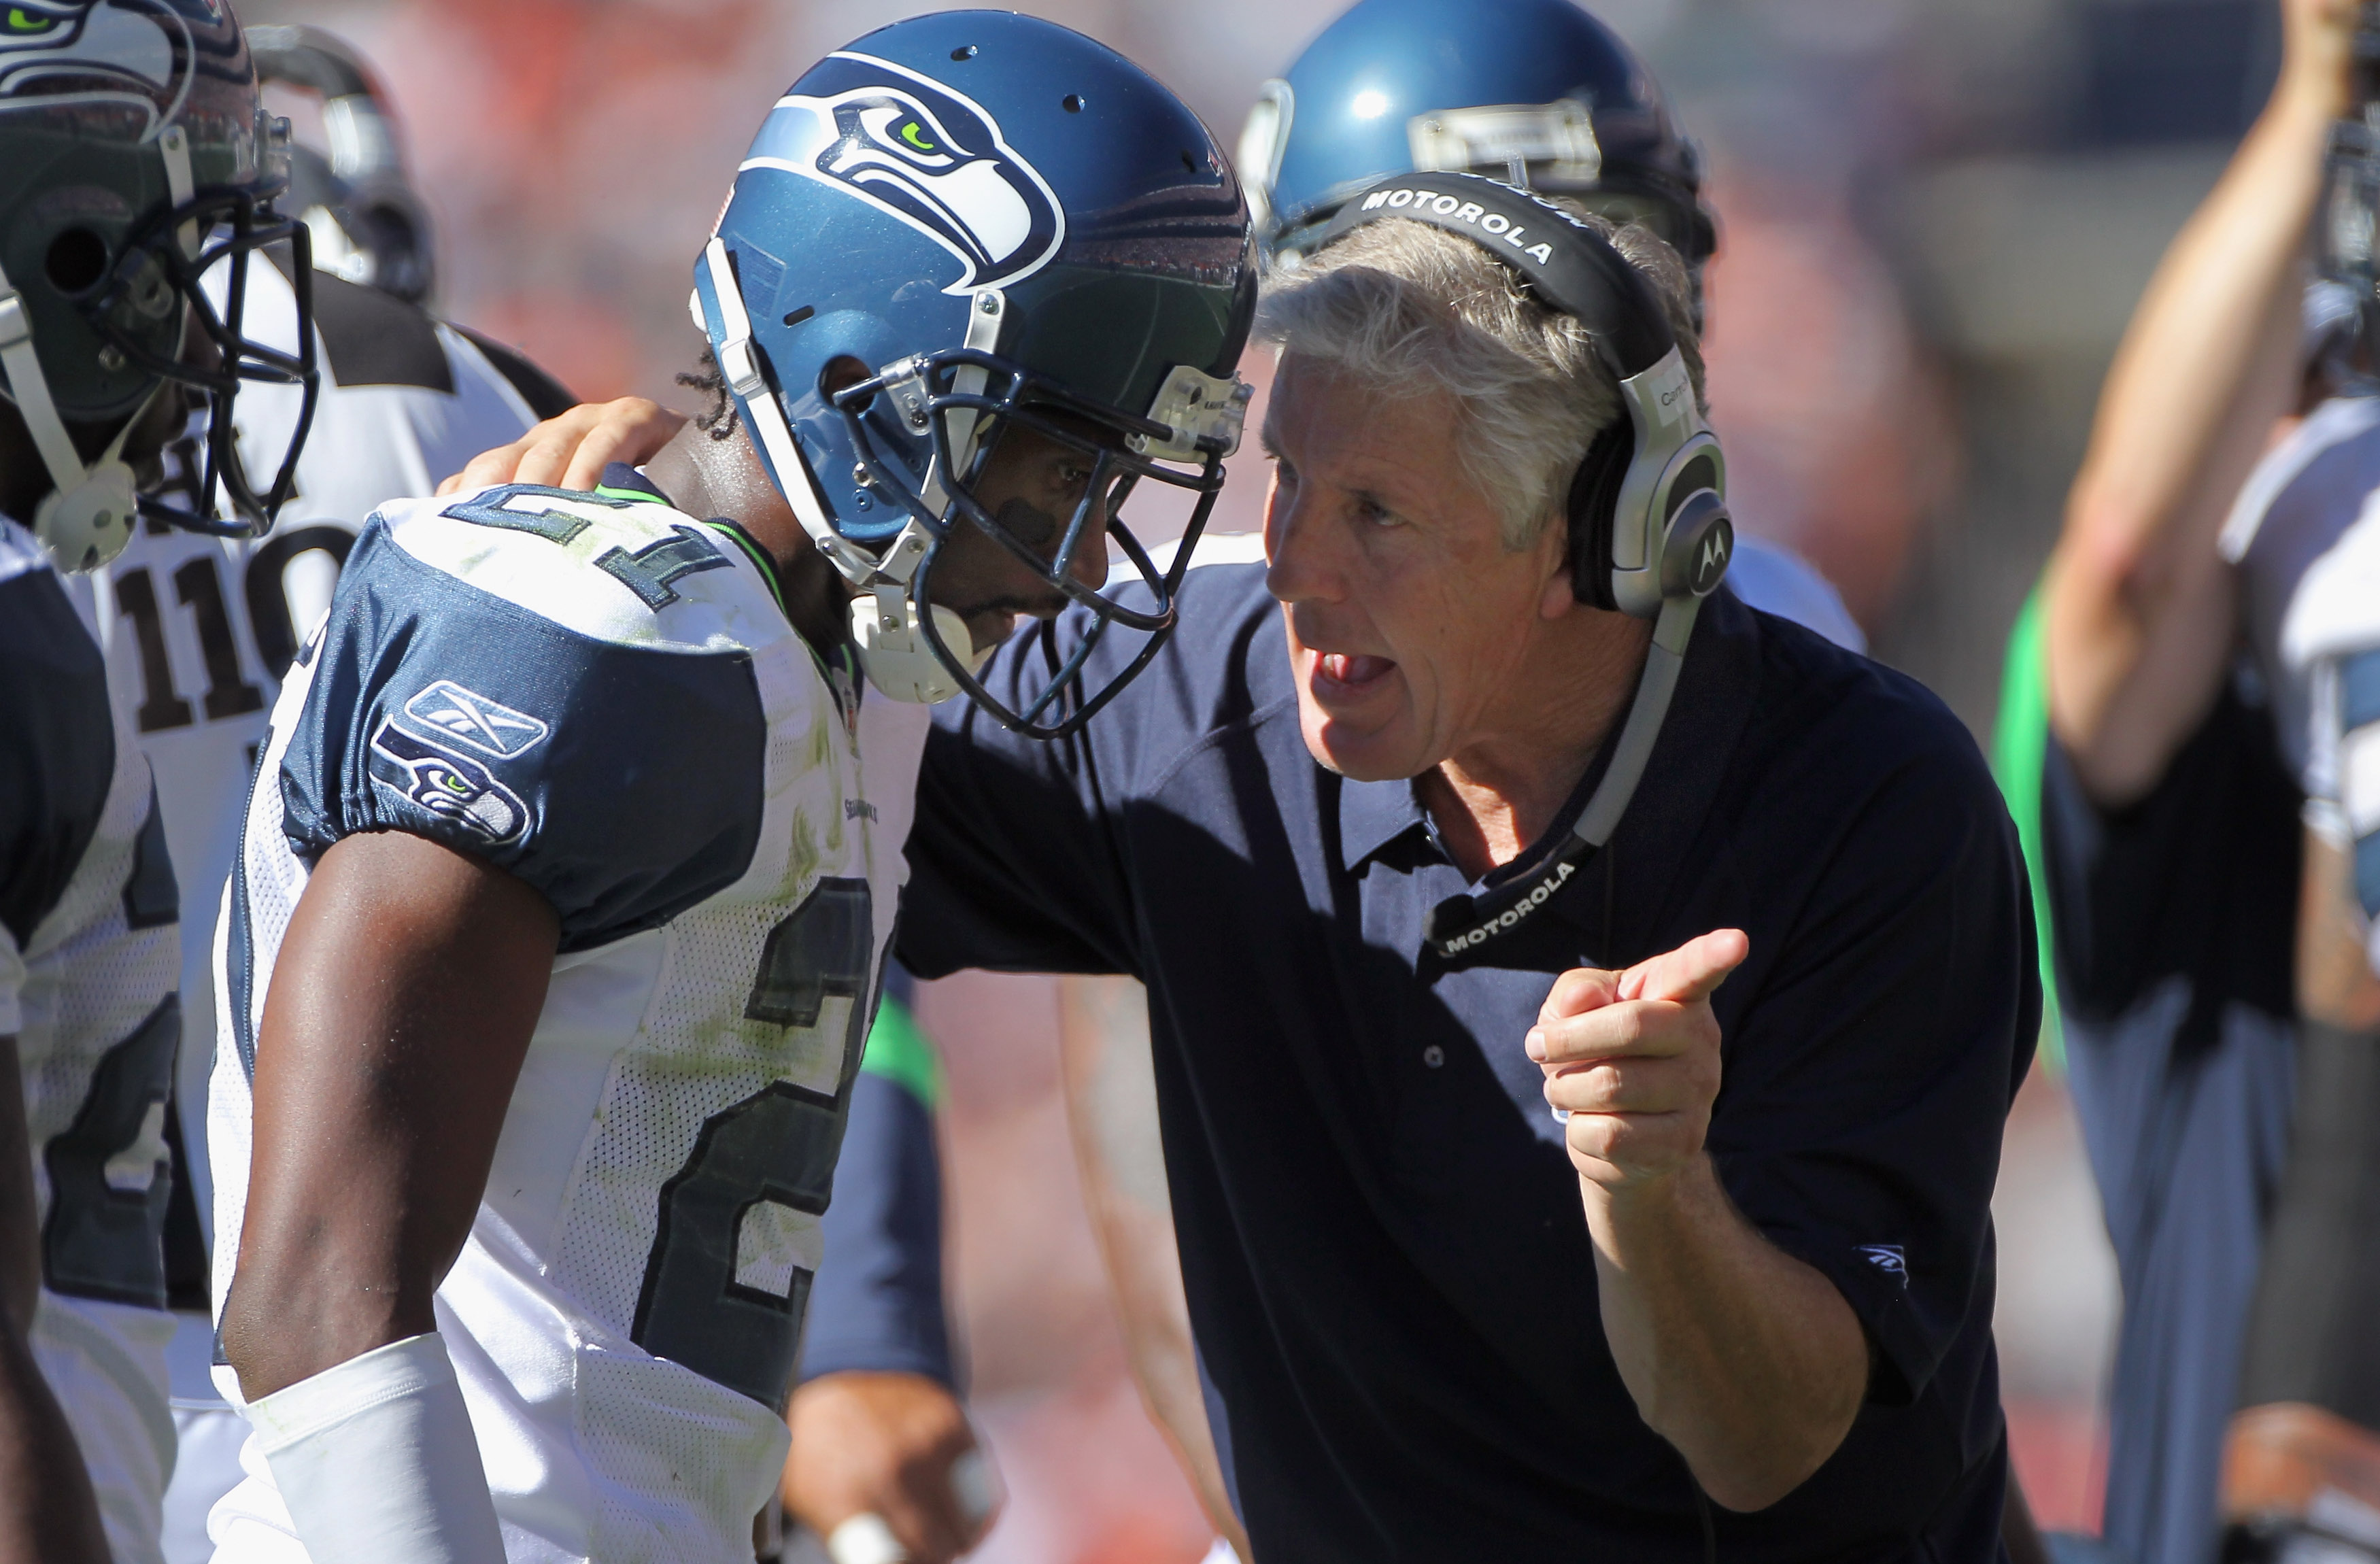 DENVER - SEPTEMBER 19:  Head coach Pete Carroll of the Seattle Seahawks directs cornerback Kelly Jennings #21 during a break in the action against the Denver Broncos at INVESCO Field at Mile High on September 19, 2010 in Denver, Colorado. The Broncos defe